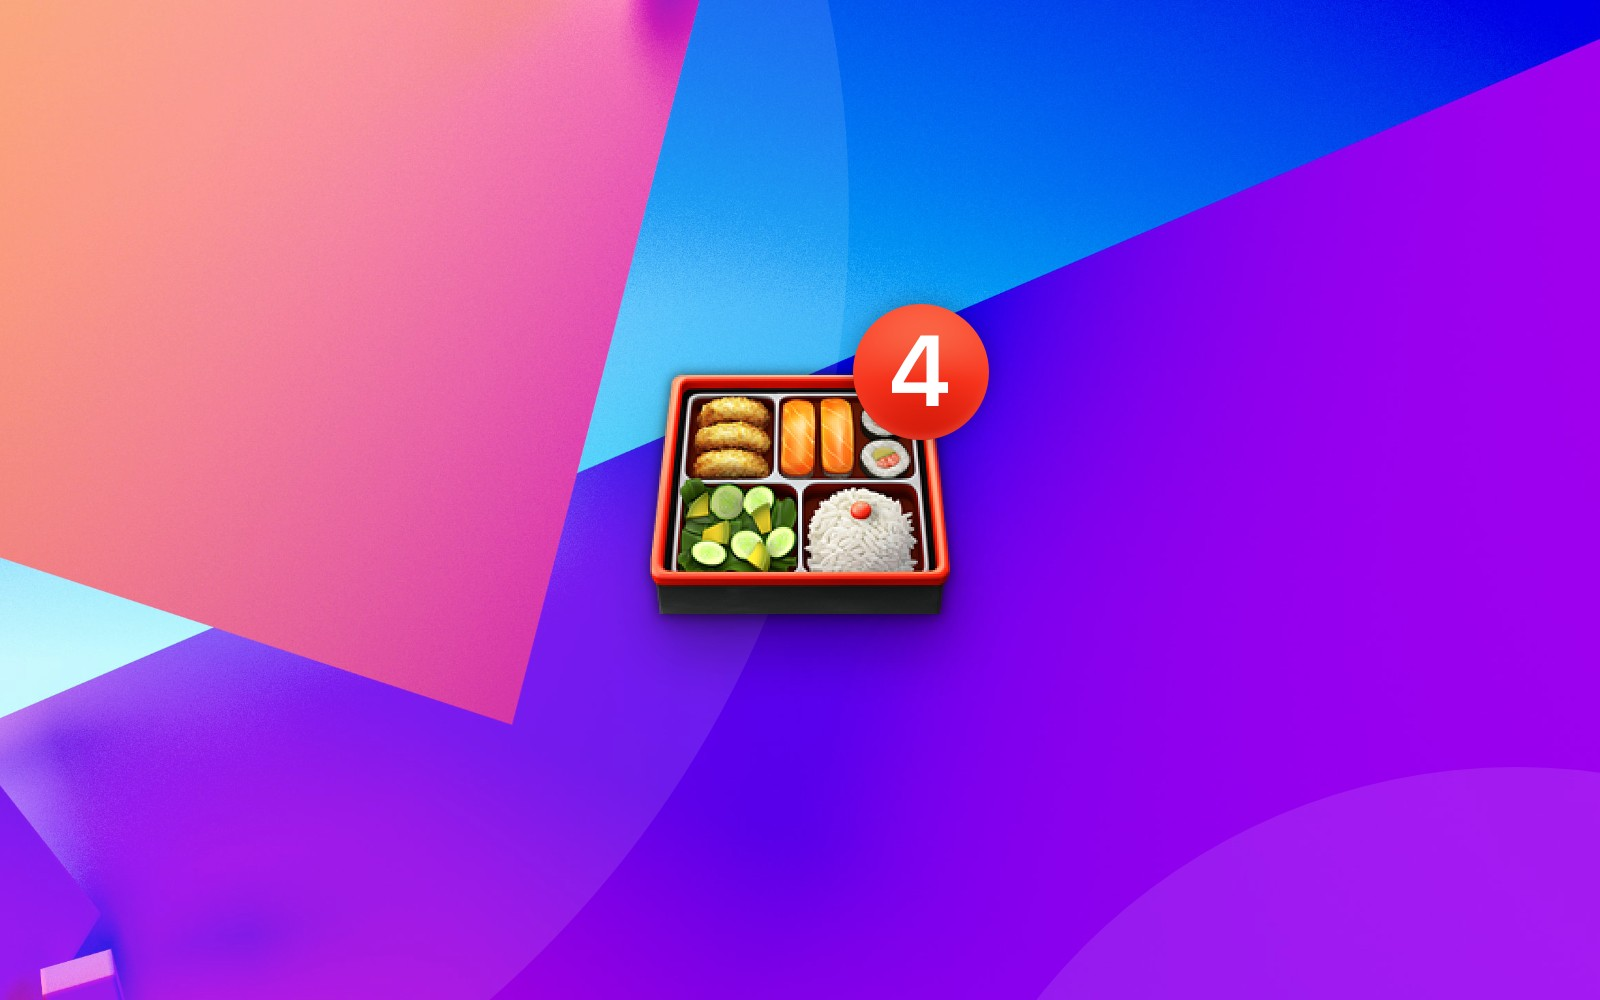 Bento box emoji with number 4 badge on abstract geometric background